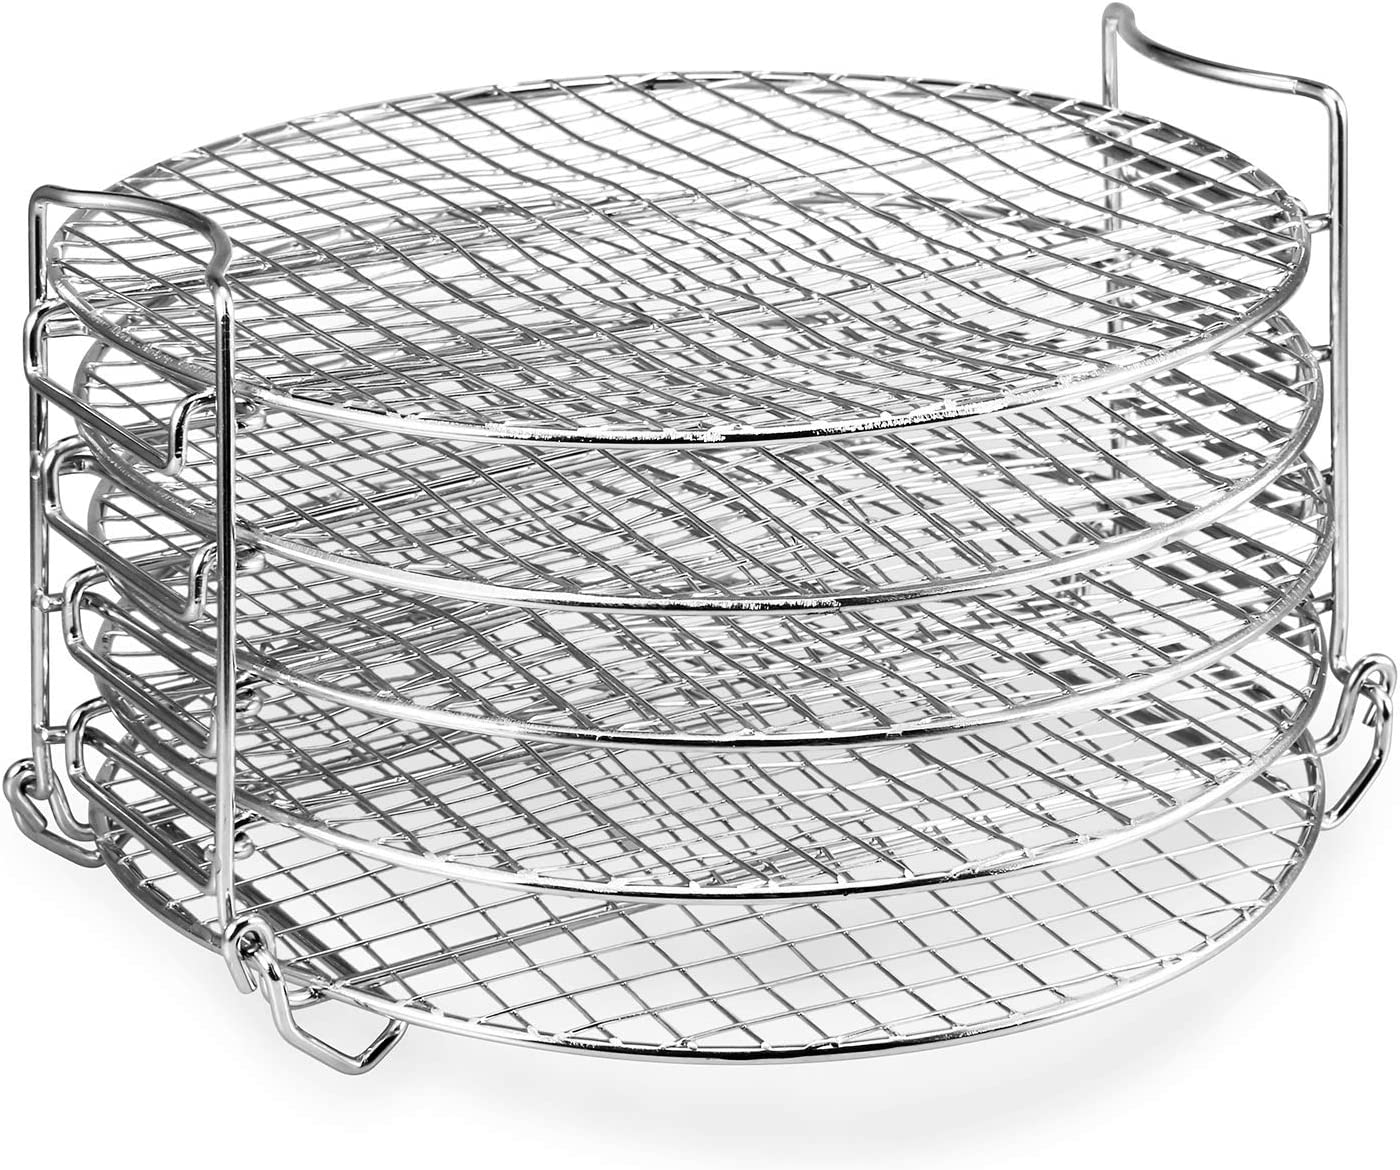 Dehydrator Rack,6.5 & 8 qt Stainless Steel Dehydrator Stand Accessory Compatible with Ninja Foodi Pressure Cooker and Air Fryer Bullet point